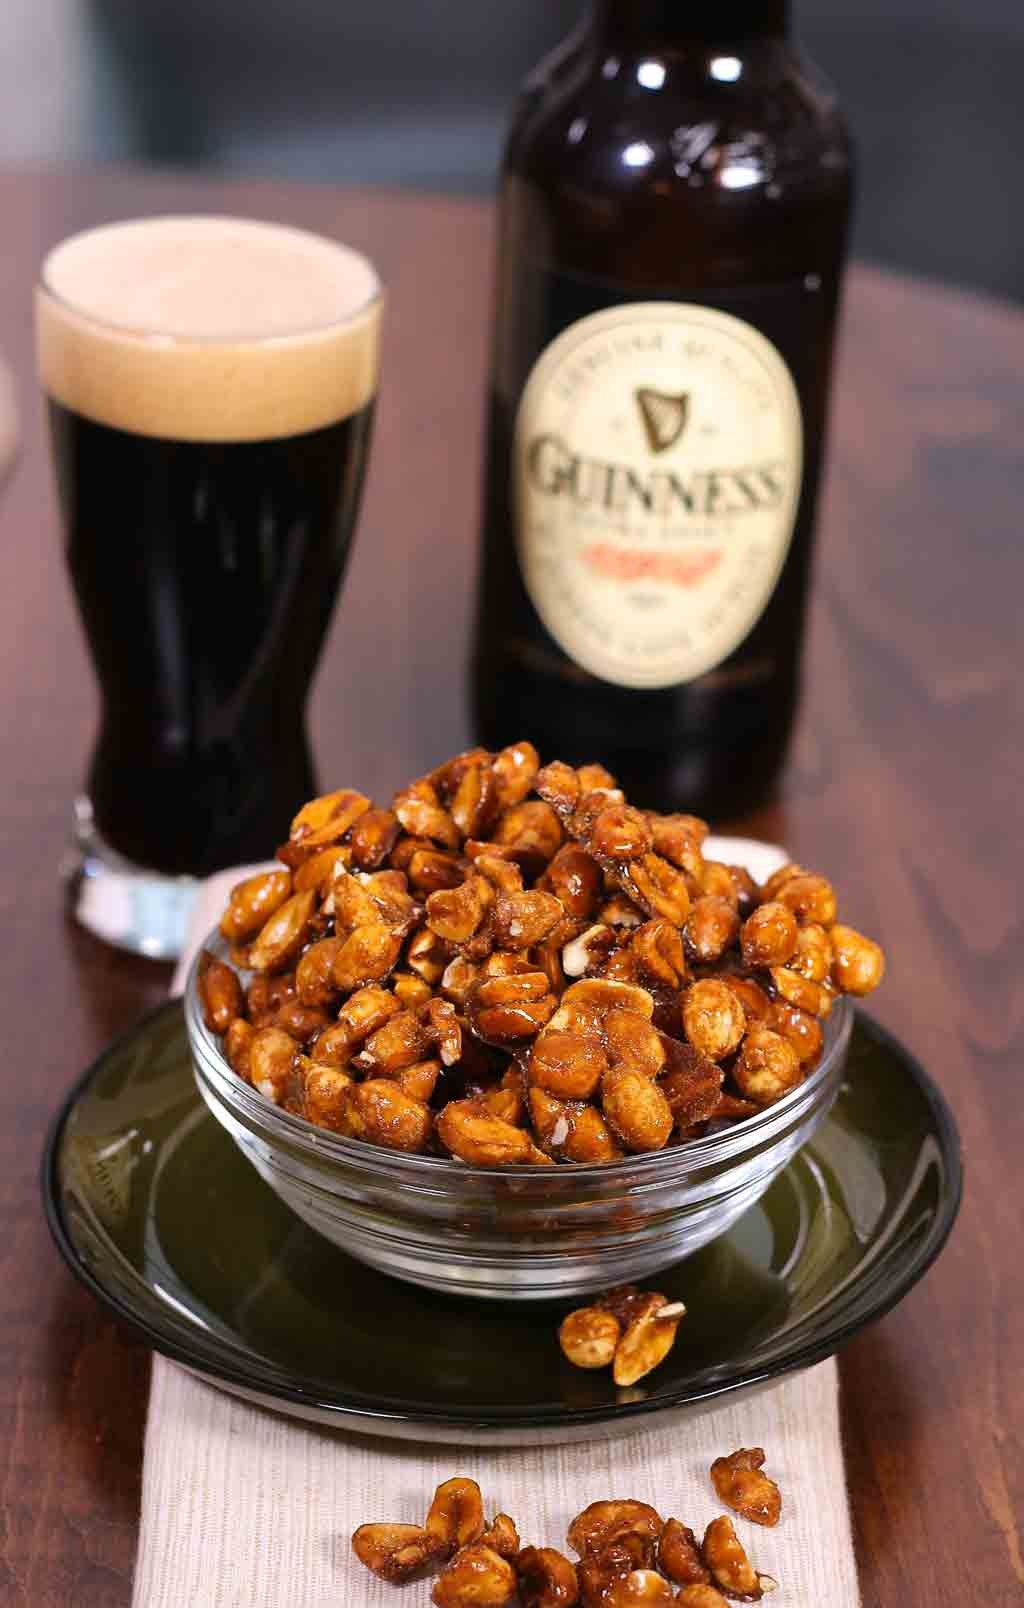 Guinness Glazed Nuts